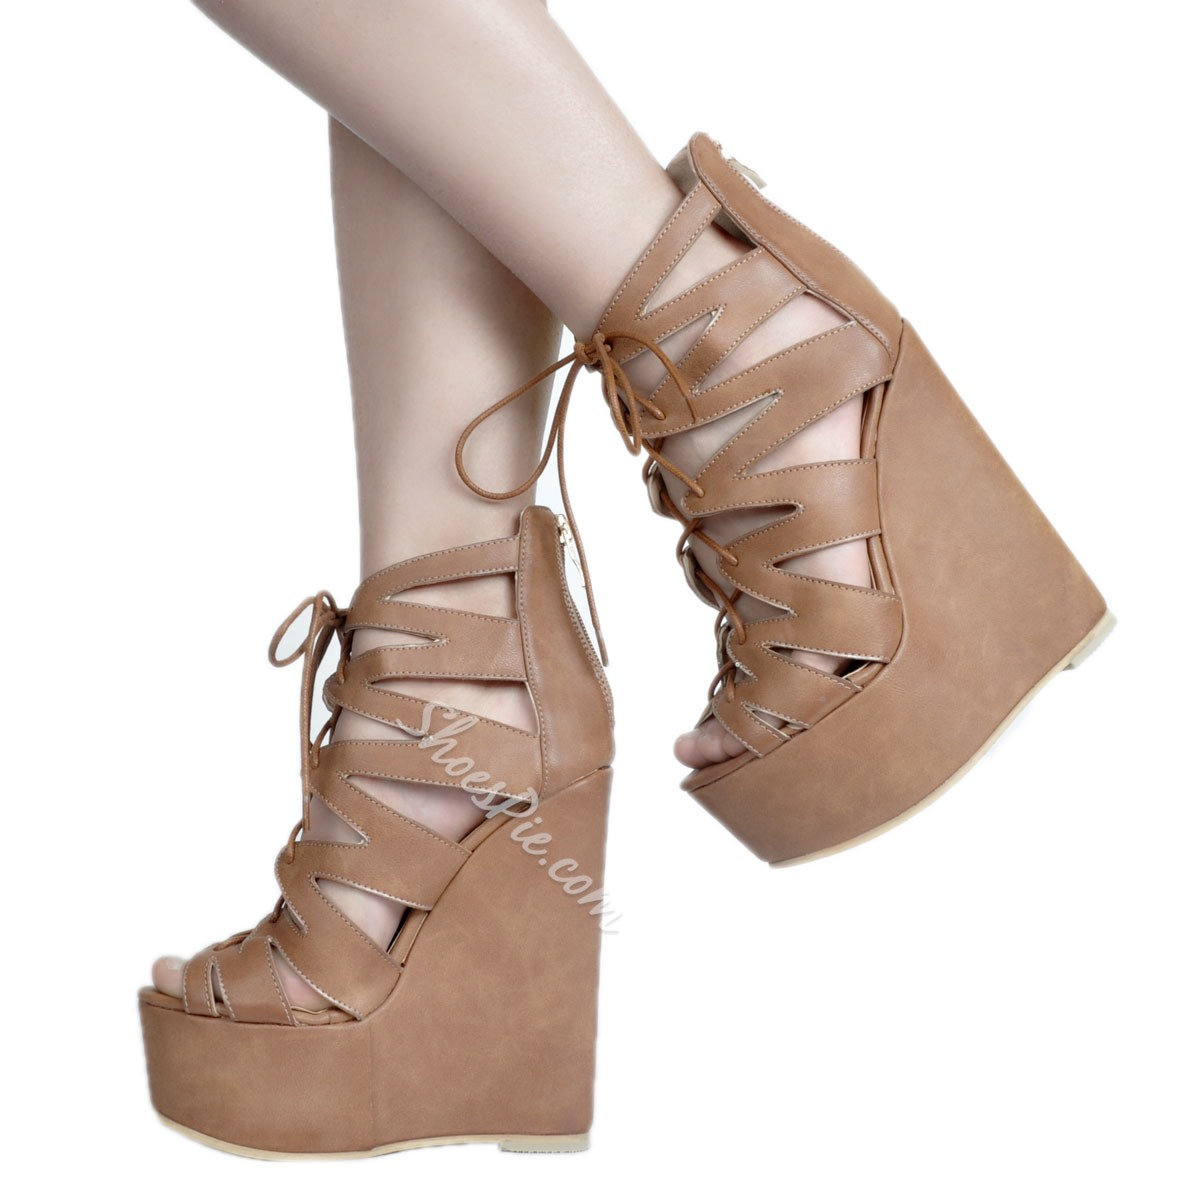 4f7b4ce932dc Shoespie Zipper Peep Toe Cross Strap Platform Wedge Heels Gladiator Sandals-  Shoespie.com